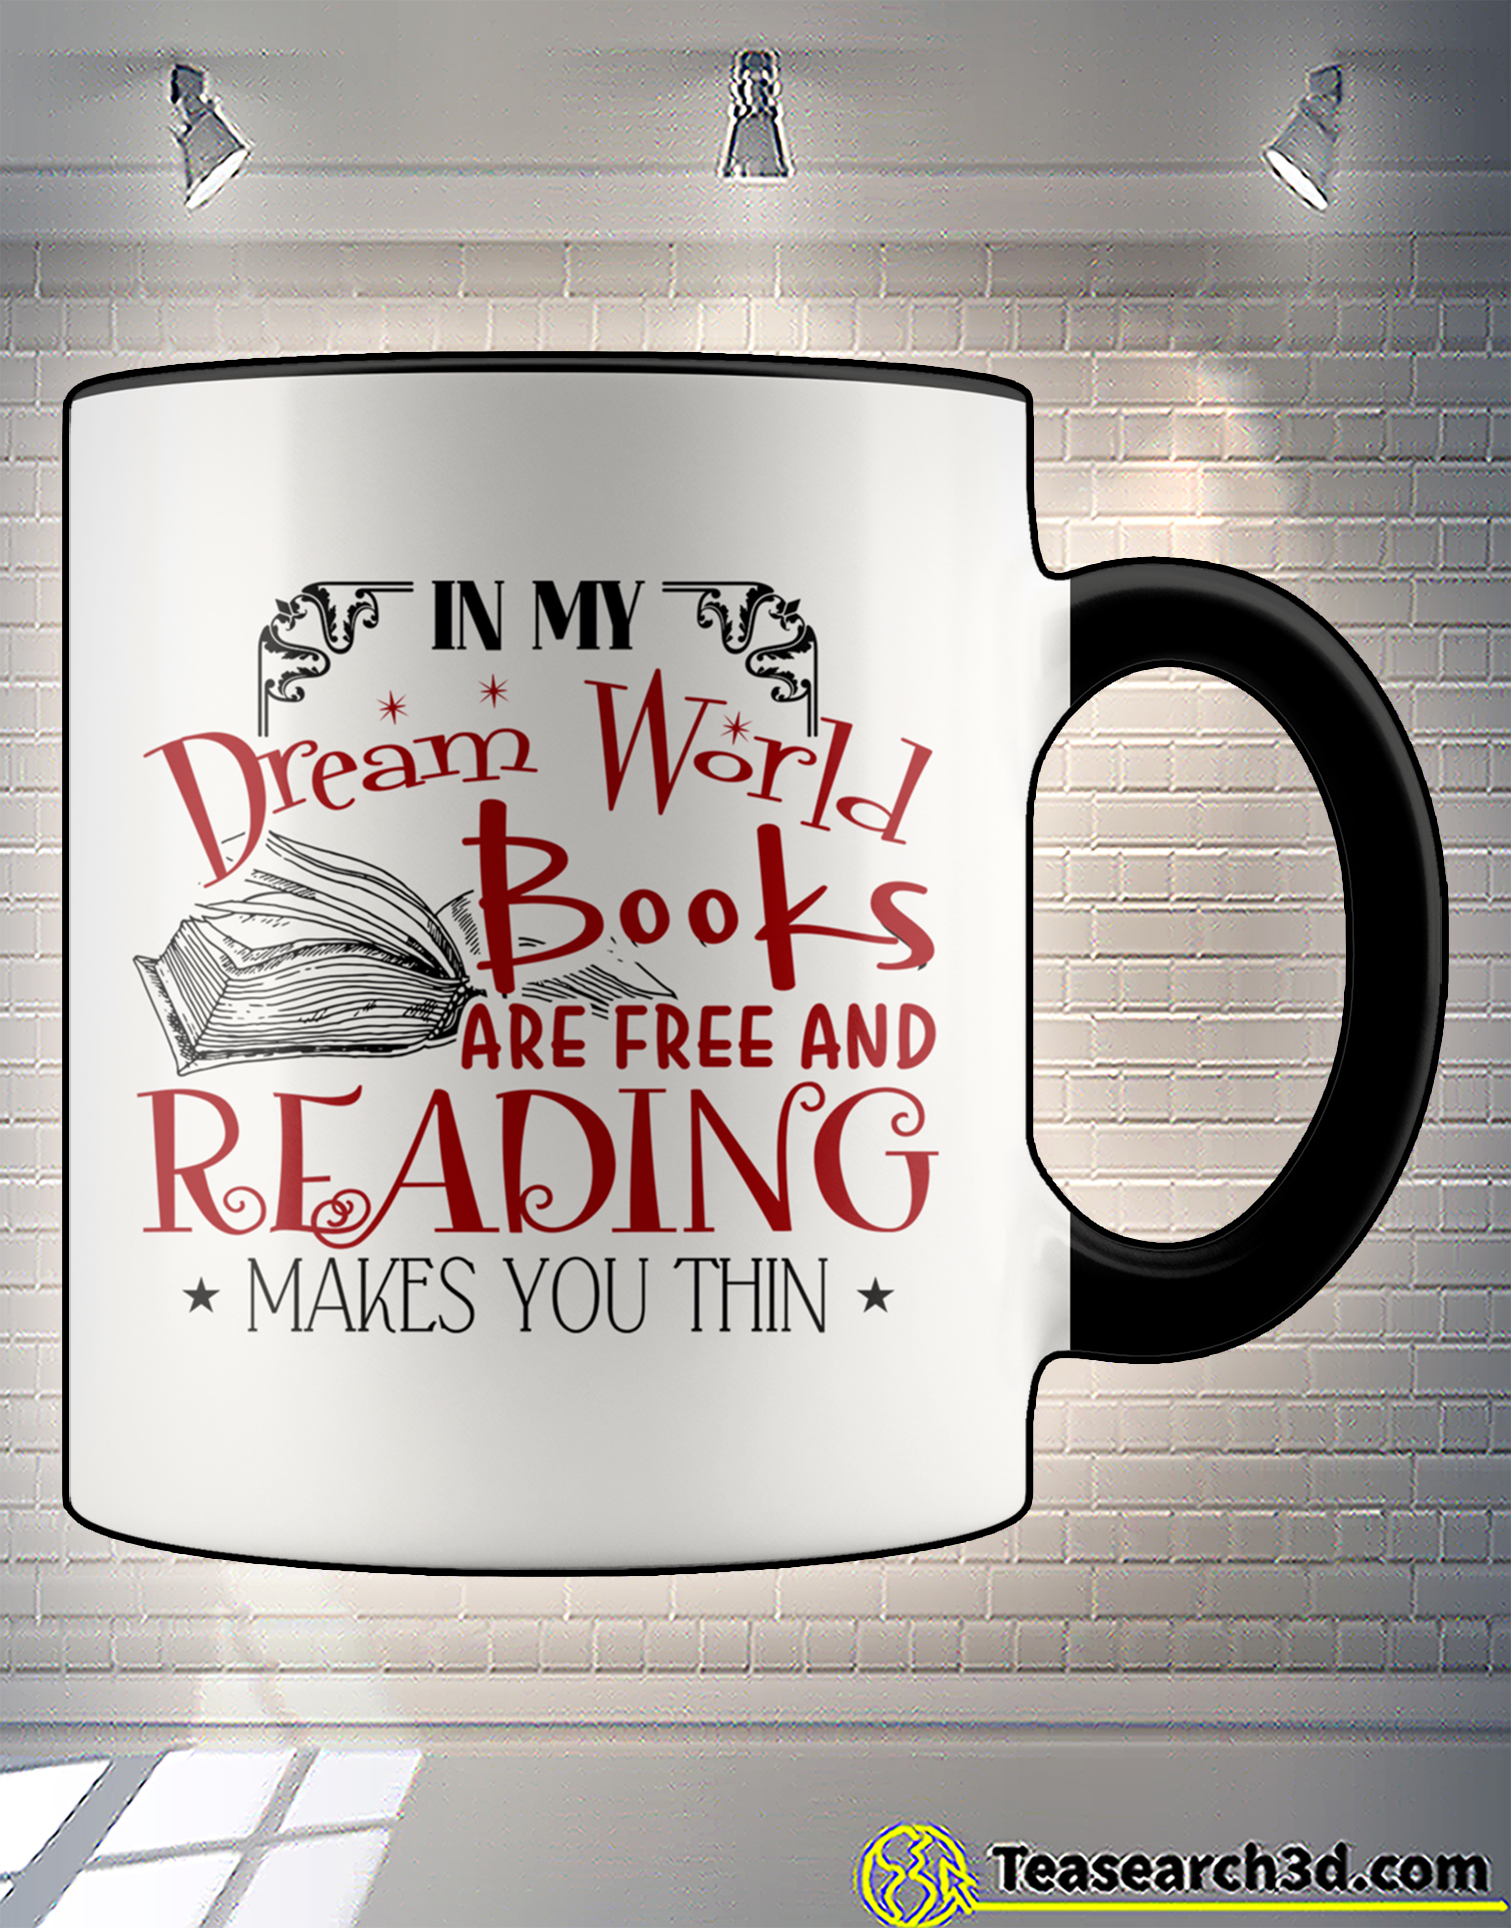 In my dream world books are free and reading makes you thin accent mug 2